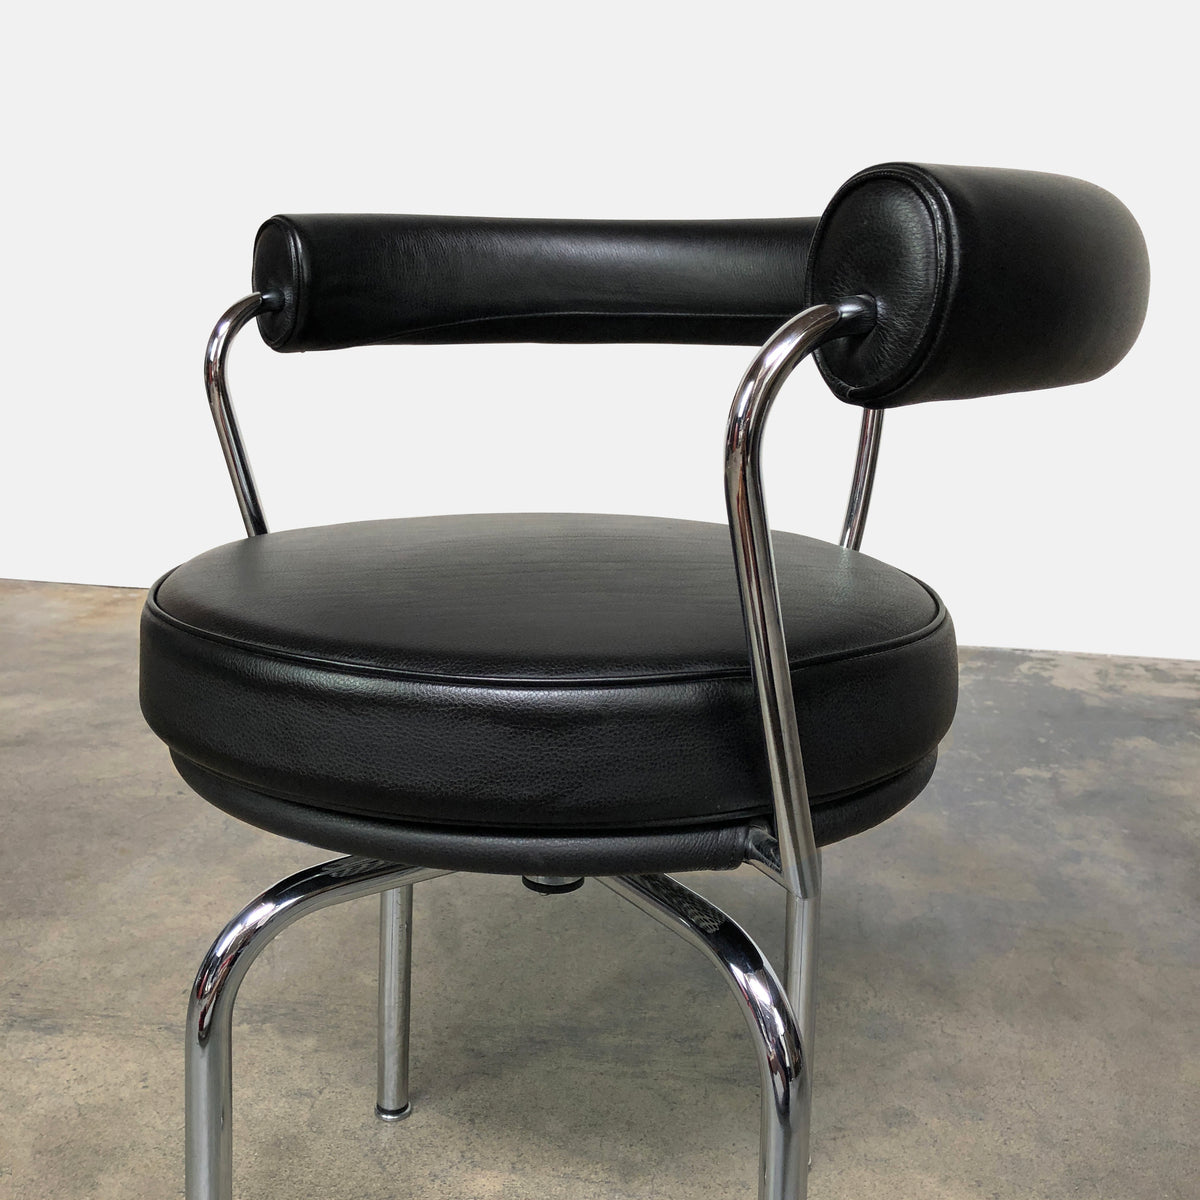 Cassina Le Corbusier Black Leather LC7 Swivel Chair Pierre Jeanneret